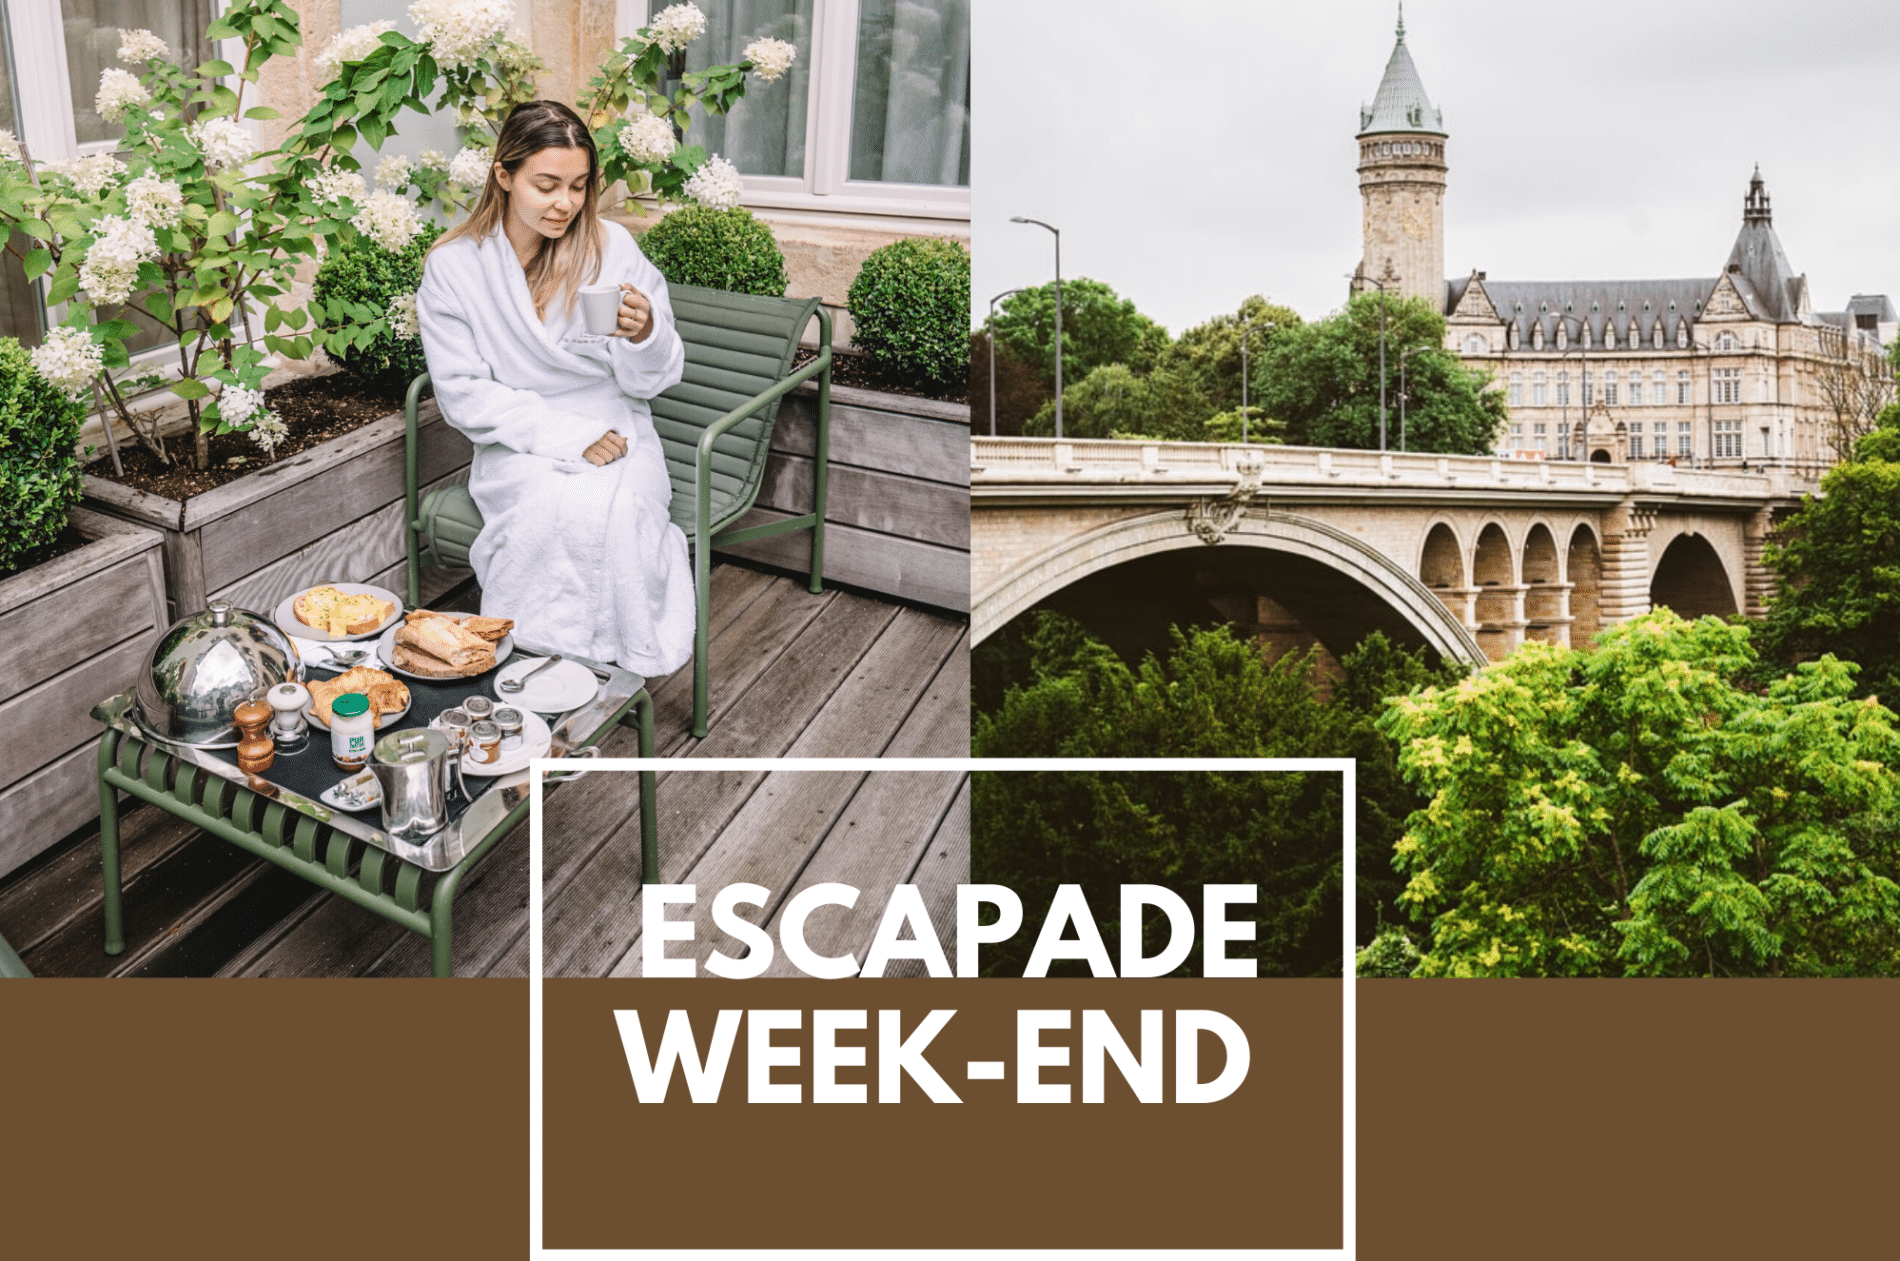 Escapade week-end FR